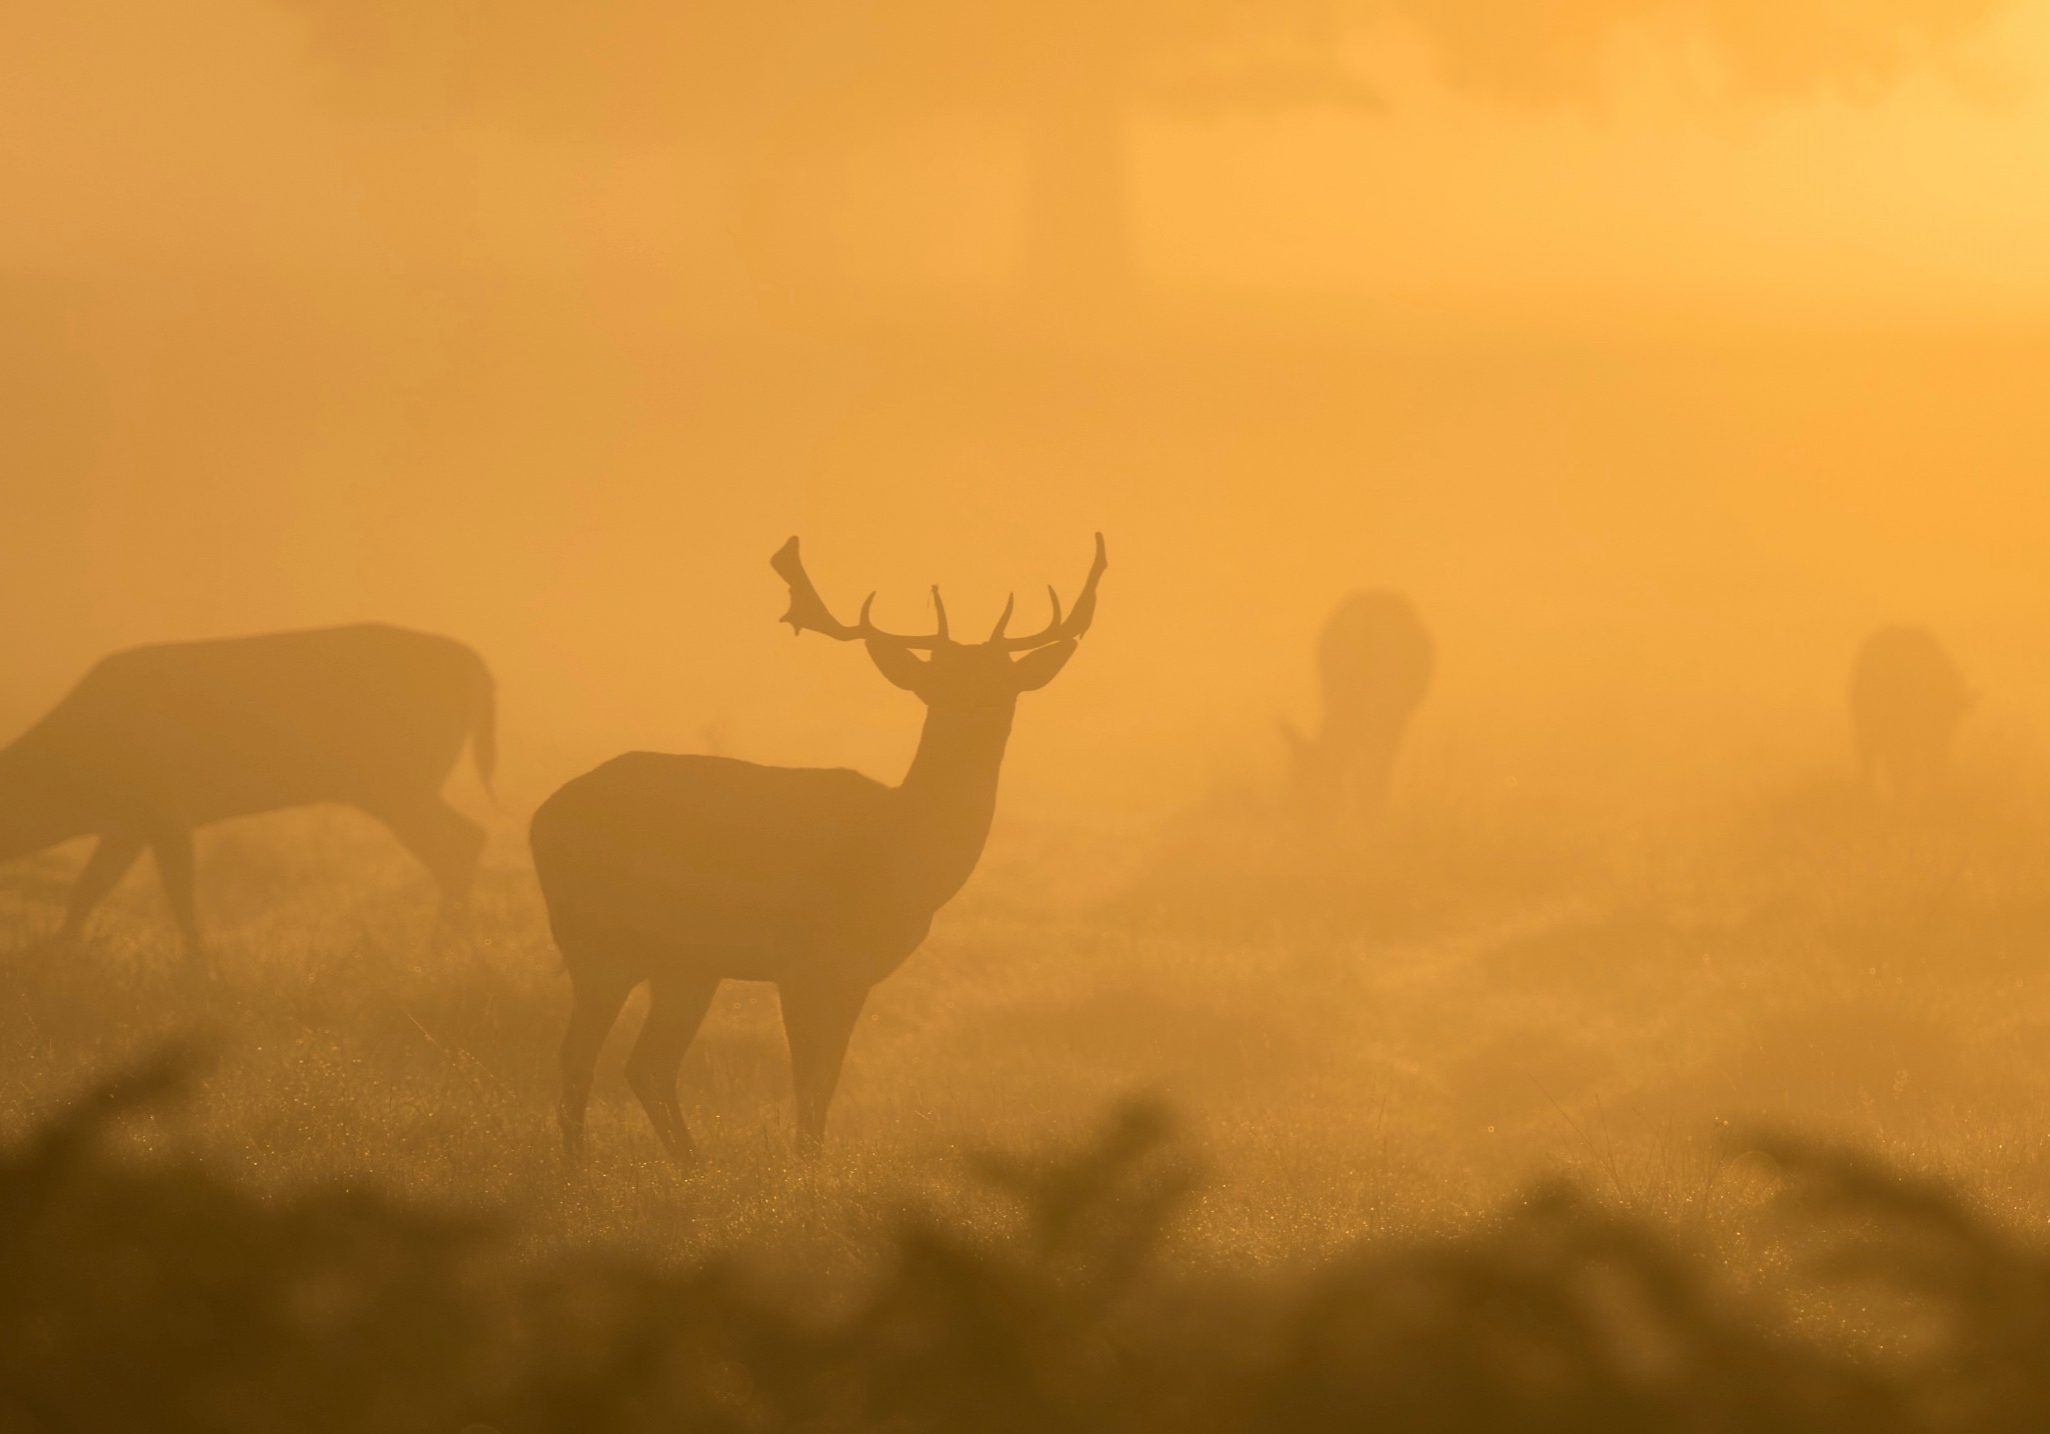 stags-in-the-mist_16x9